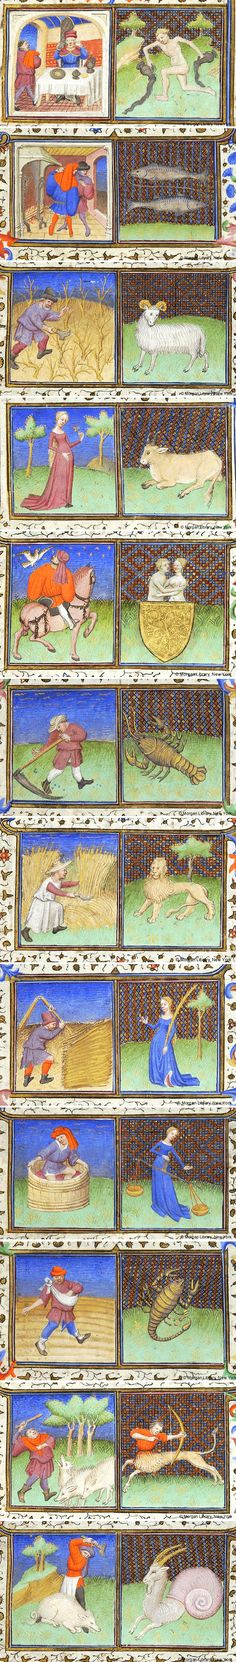 Signs of the Zodiac | Book of Hours | France, Paris | ca. 1425-1430 | The Morgan Library & Museum